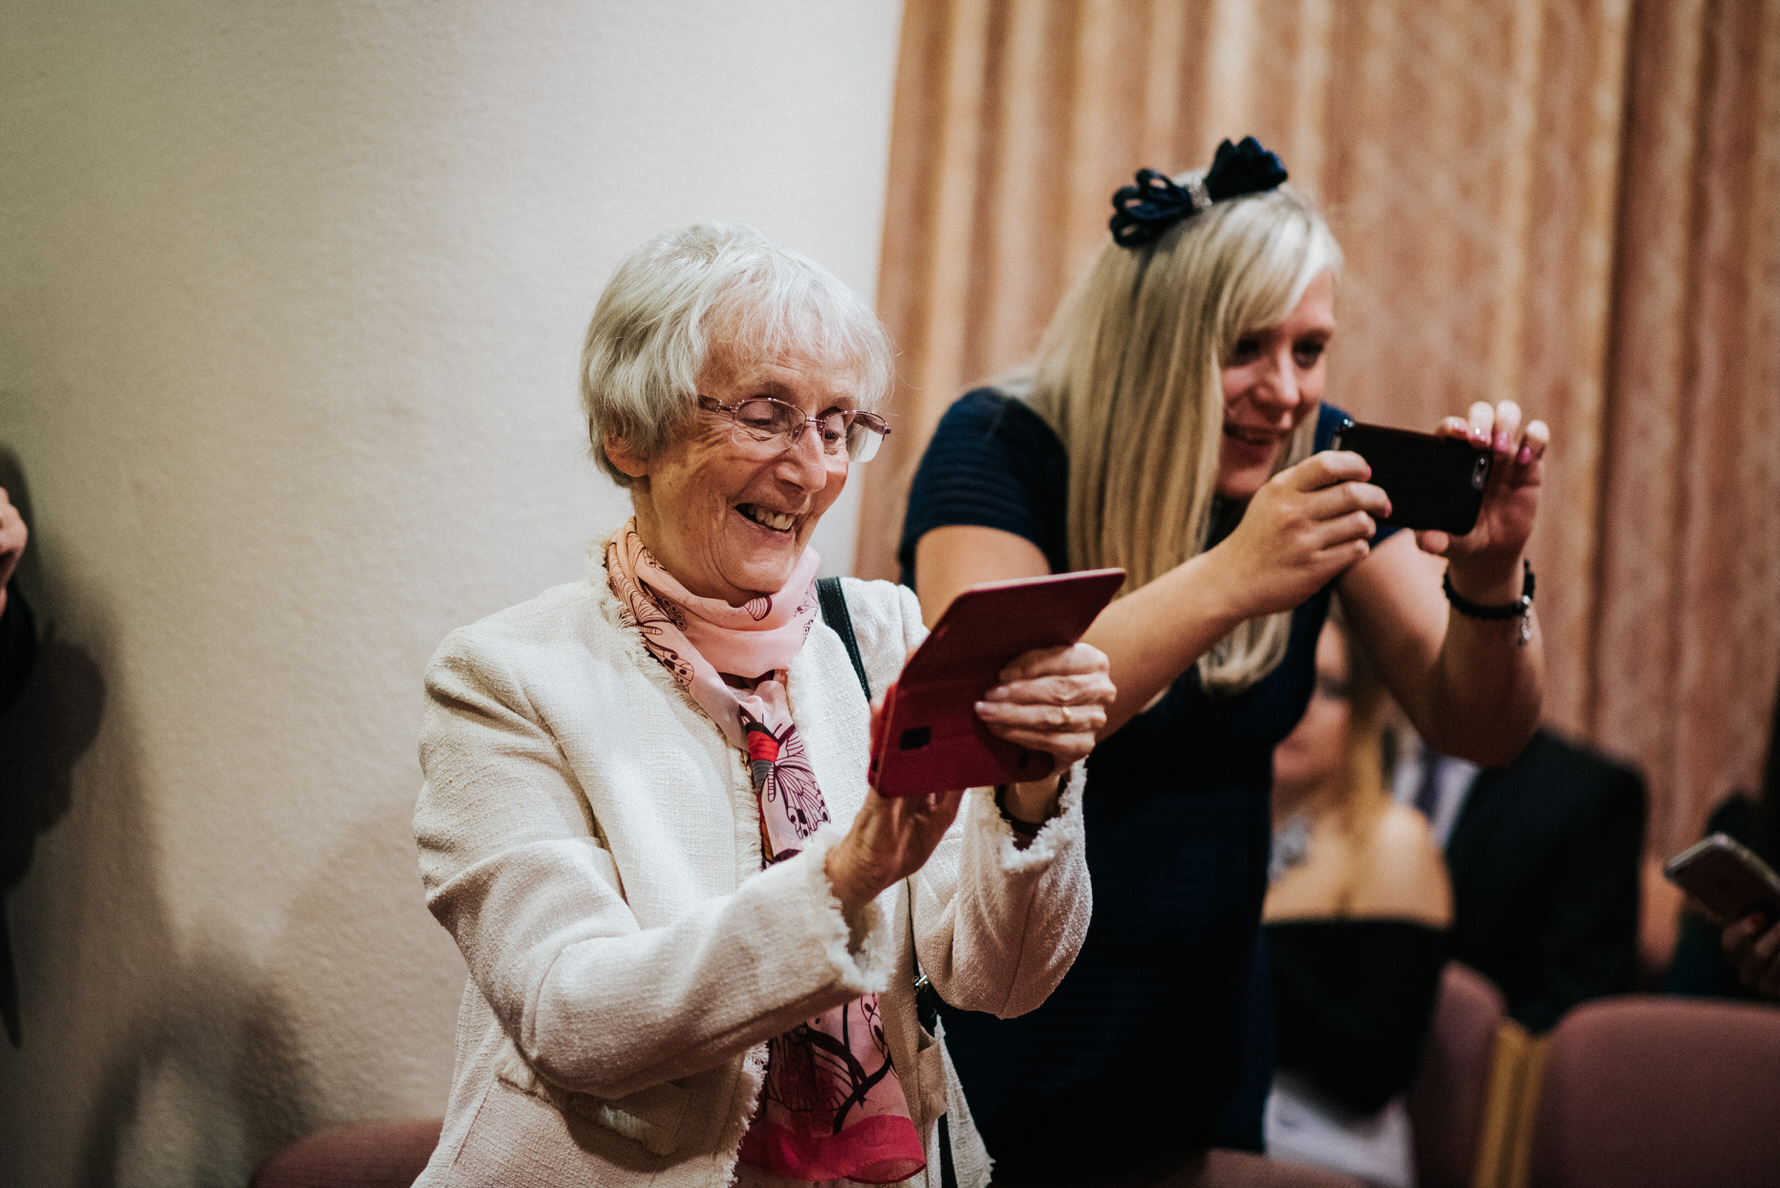 Cheshire Wedding Photojournalism - A guest taking a photograph